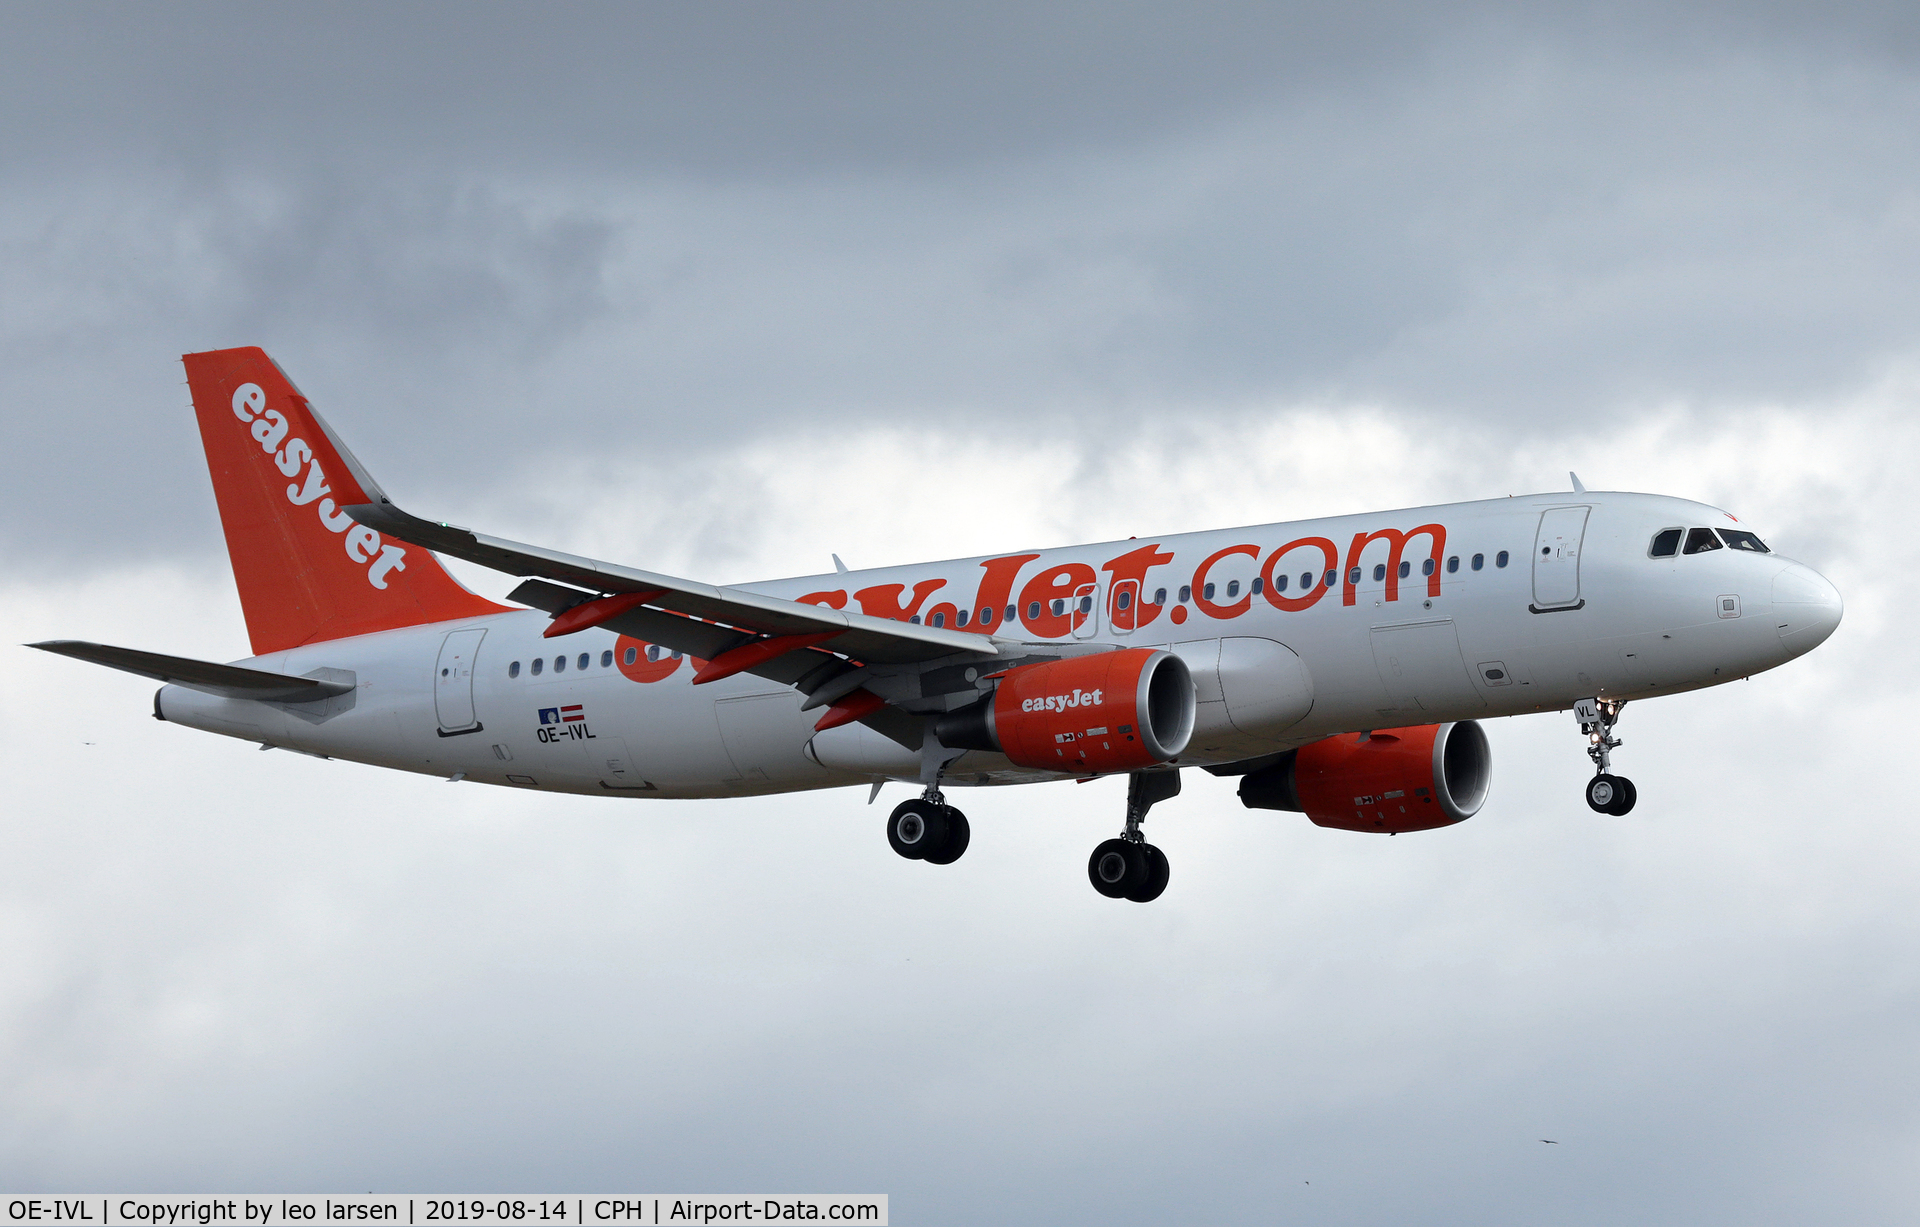 OE-IVL, 2014 Airbus A320-214 C/N 6188, Copenhagen 14.8.2019 on final to R-22L